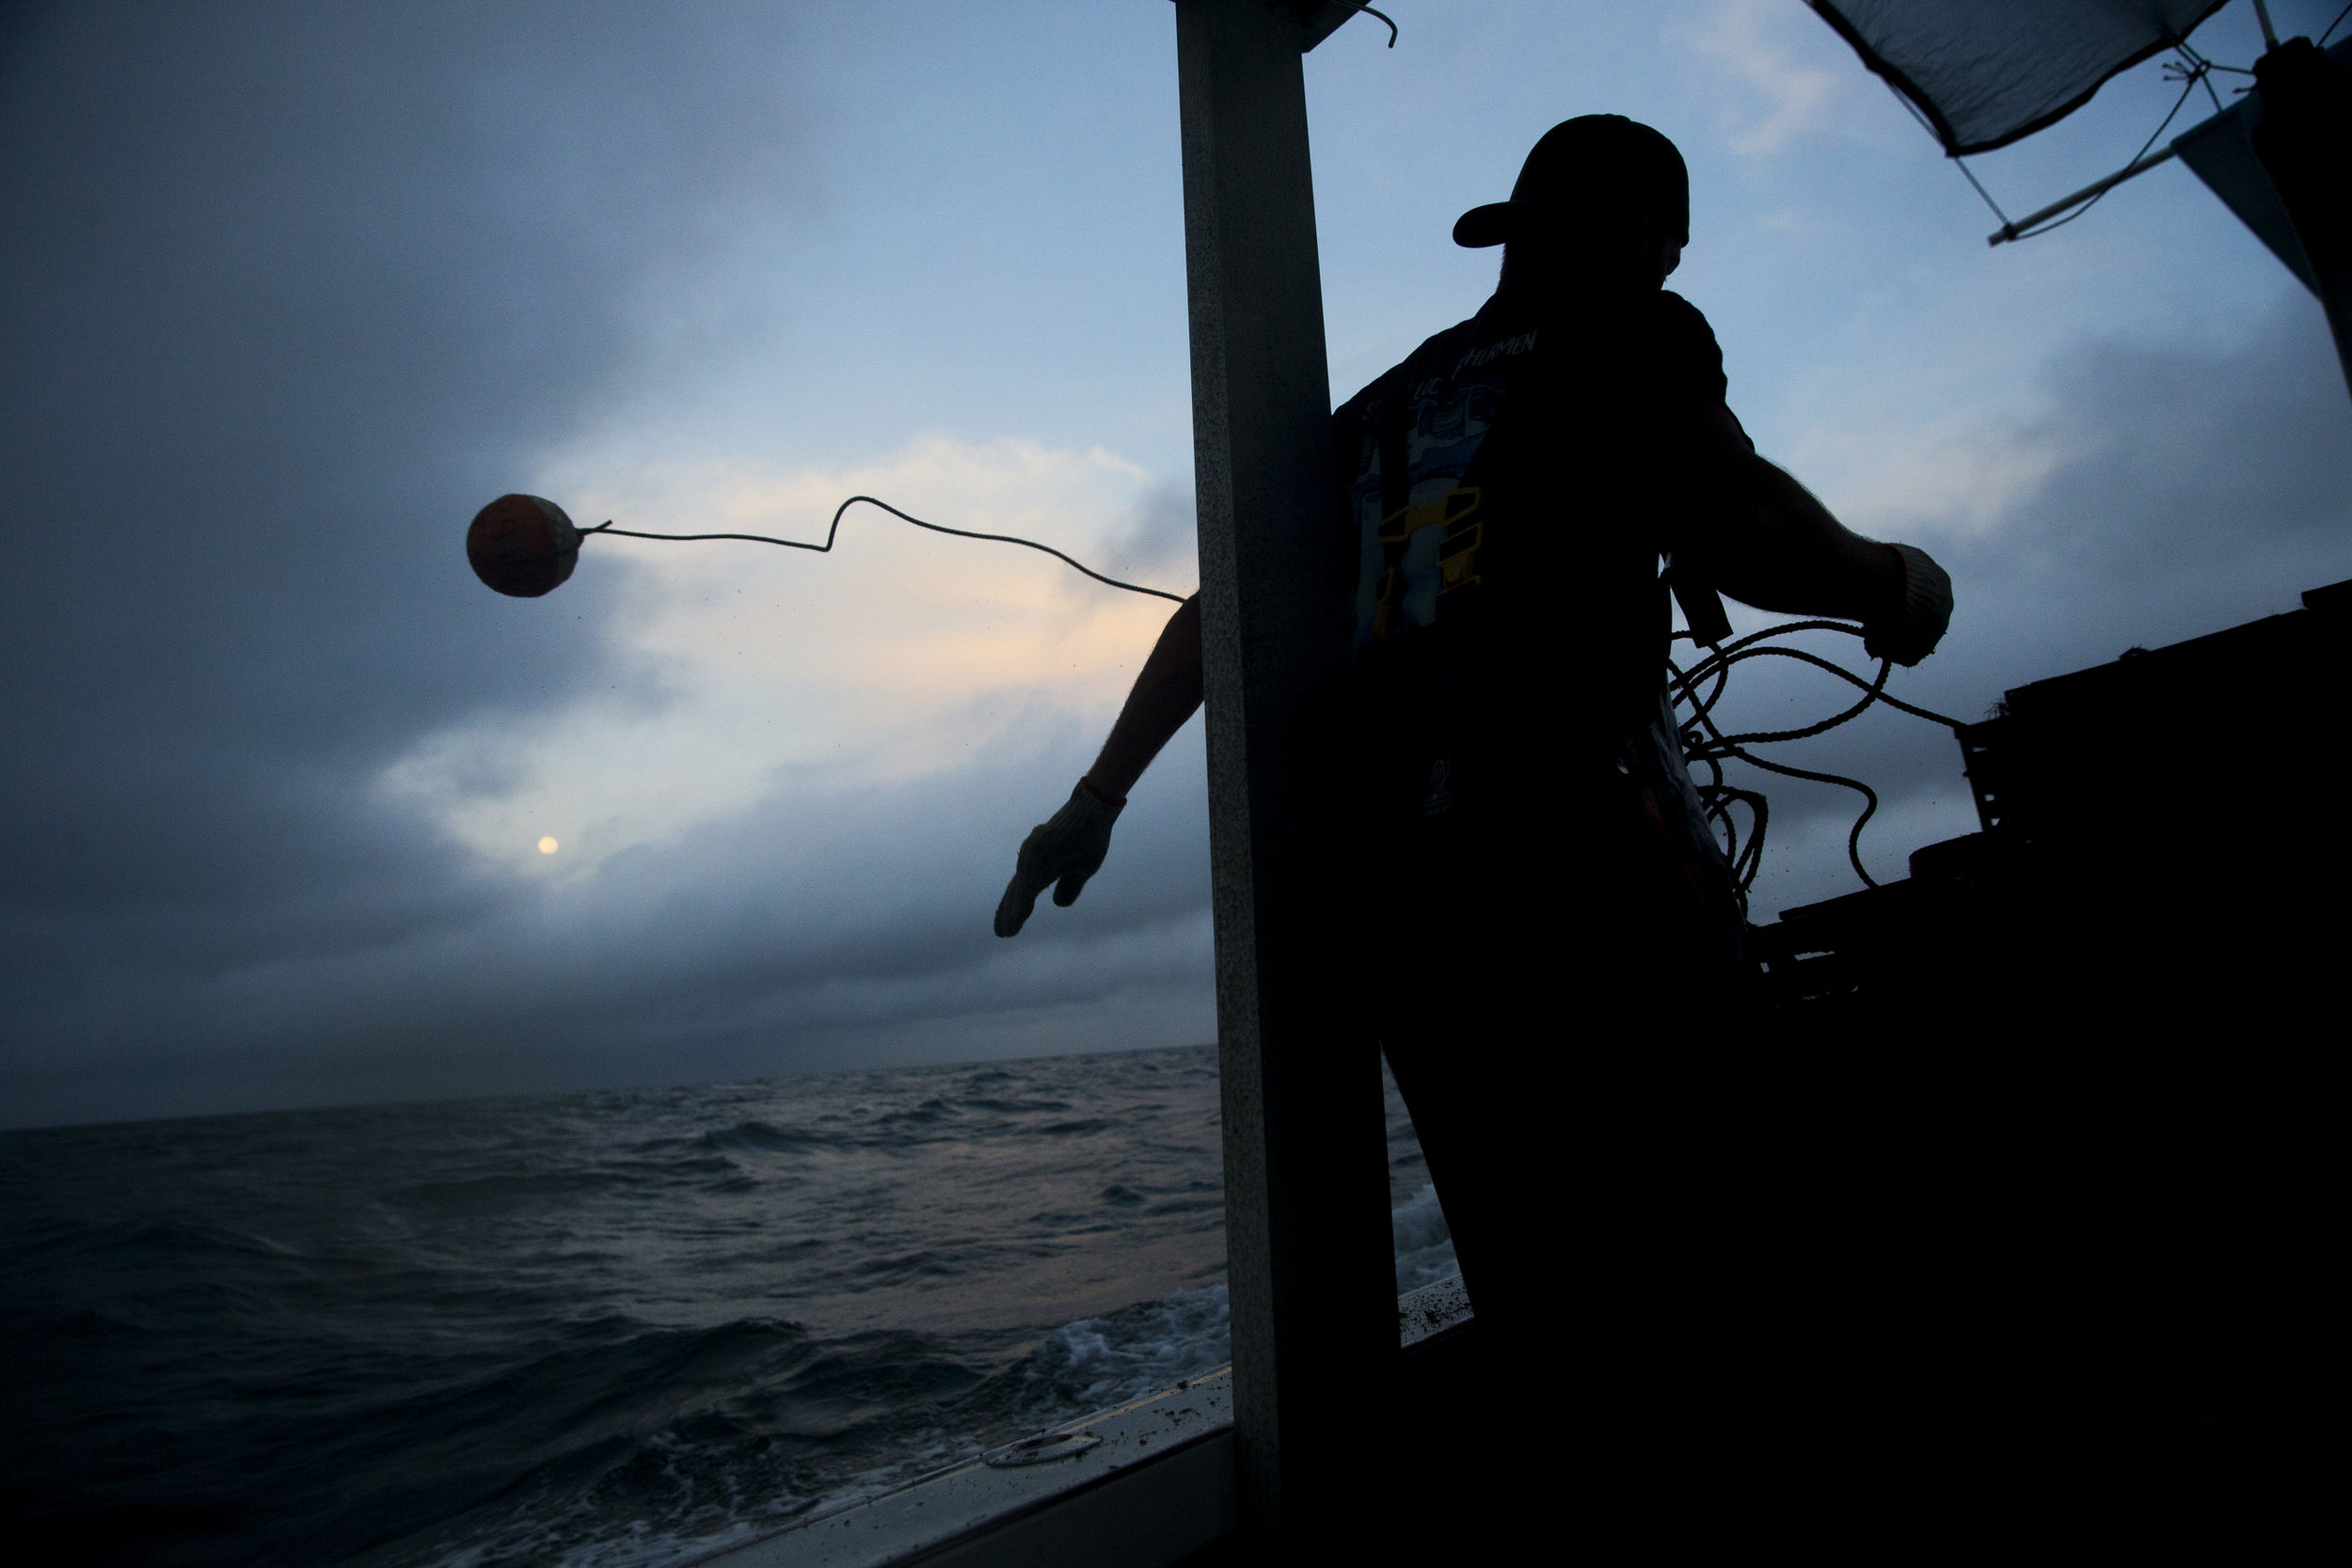 Tyler Few, crew member of the Miss Chloe Ann, tosses out a buoy to mark the location of a specific crab trap while running a line early Friday, October 6, 2017 off the coast of Goodland, Fla. During any given trip the crew will setup 200-plus traps. Open season for crab begins Oct. 15, 2017.